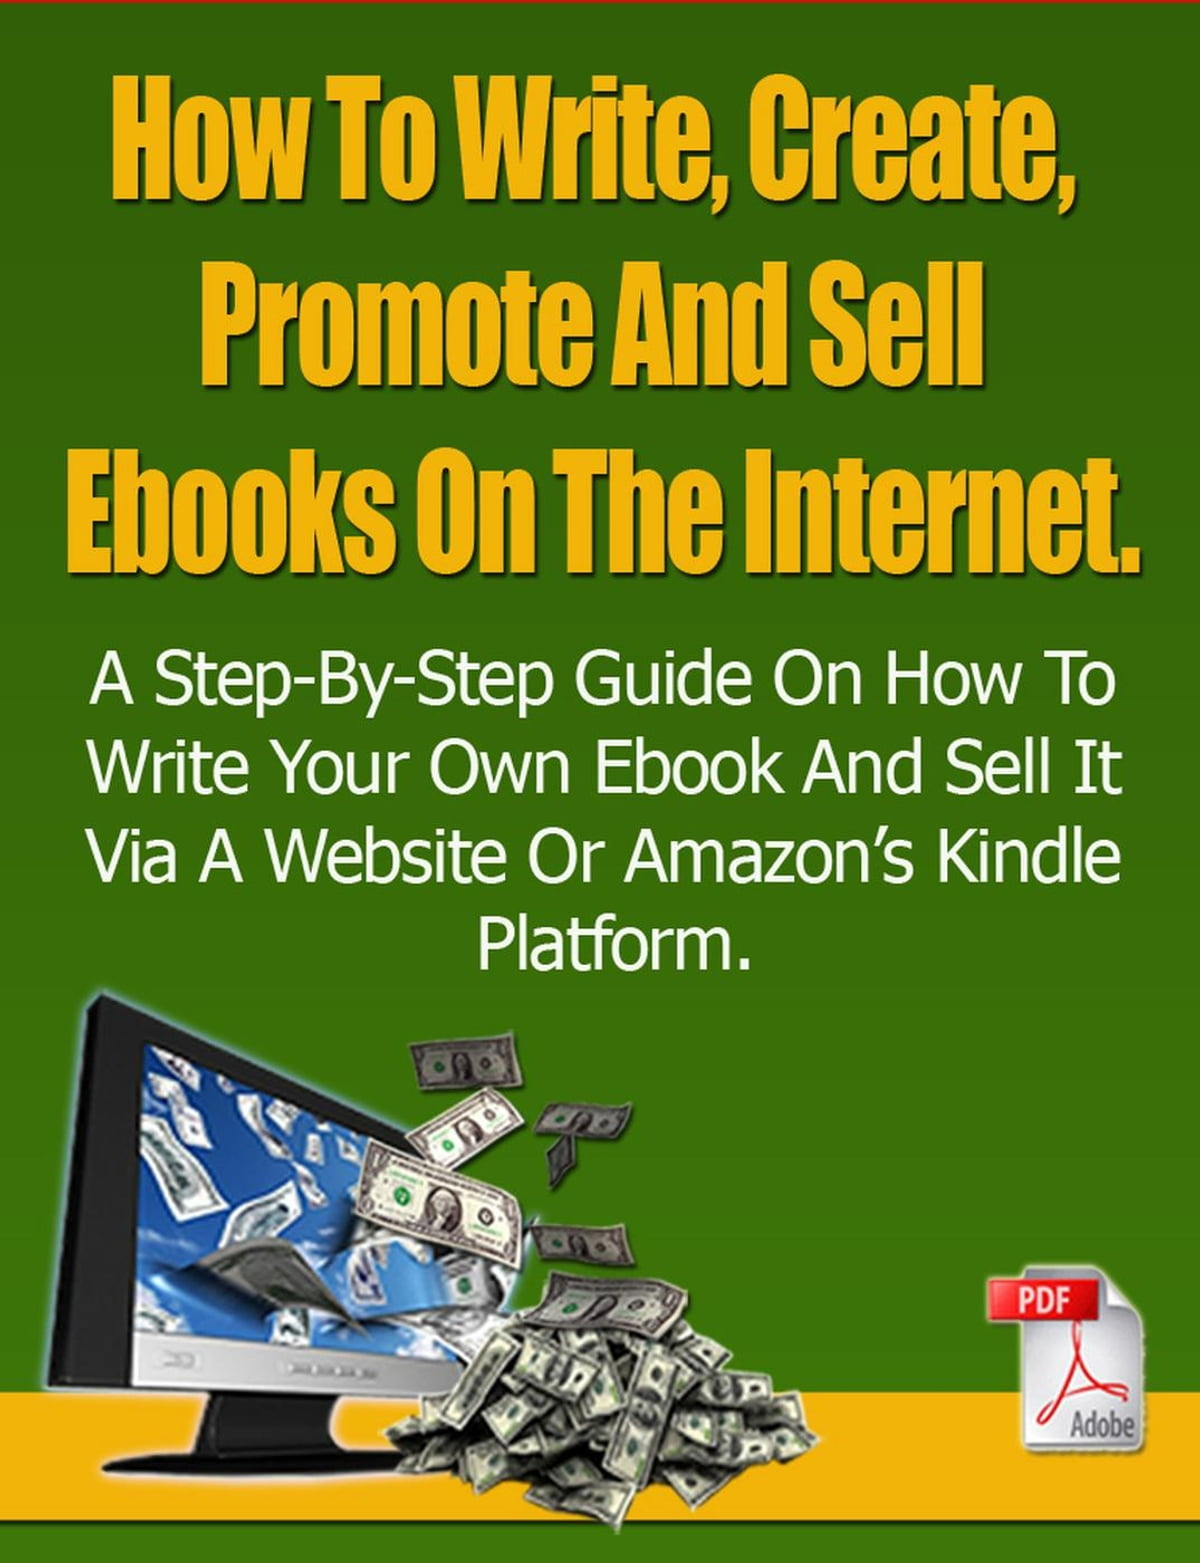 How To Write, Create, Promote And Sell Ebooks On The Internet : The  step-by-step guide on how to profit from your own Ebook ebook by Dirk Dupon  -